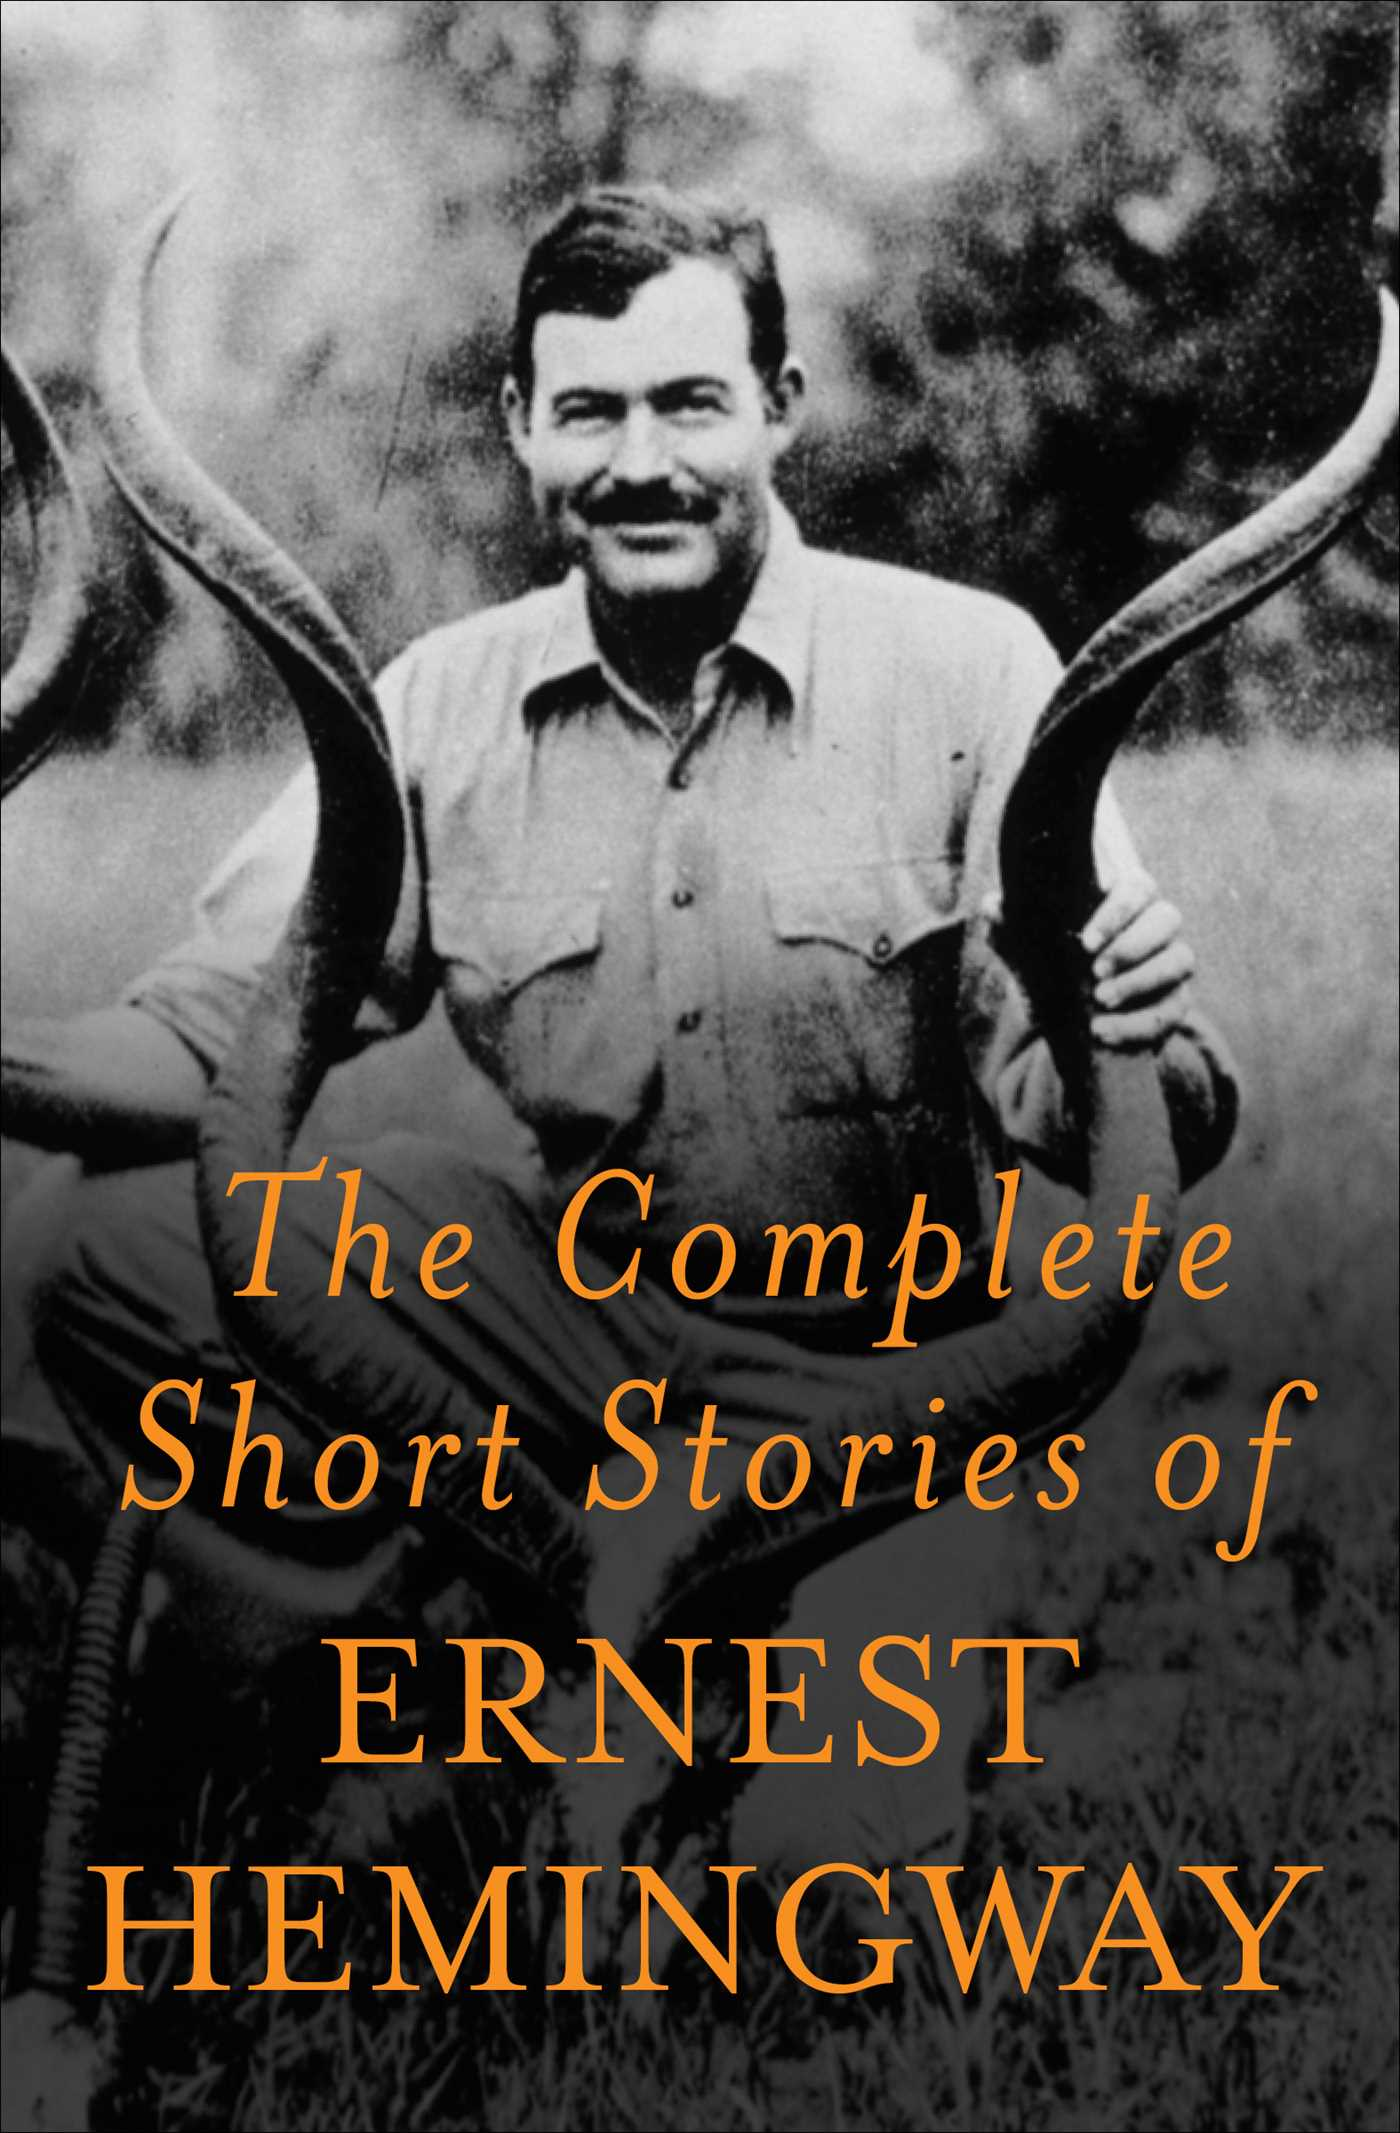 Complete-short-stories-of-ernest-hemingway-9781416587293_hr